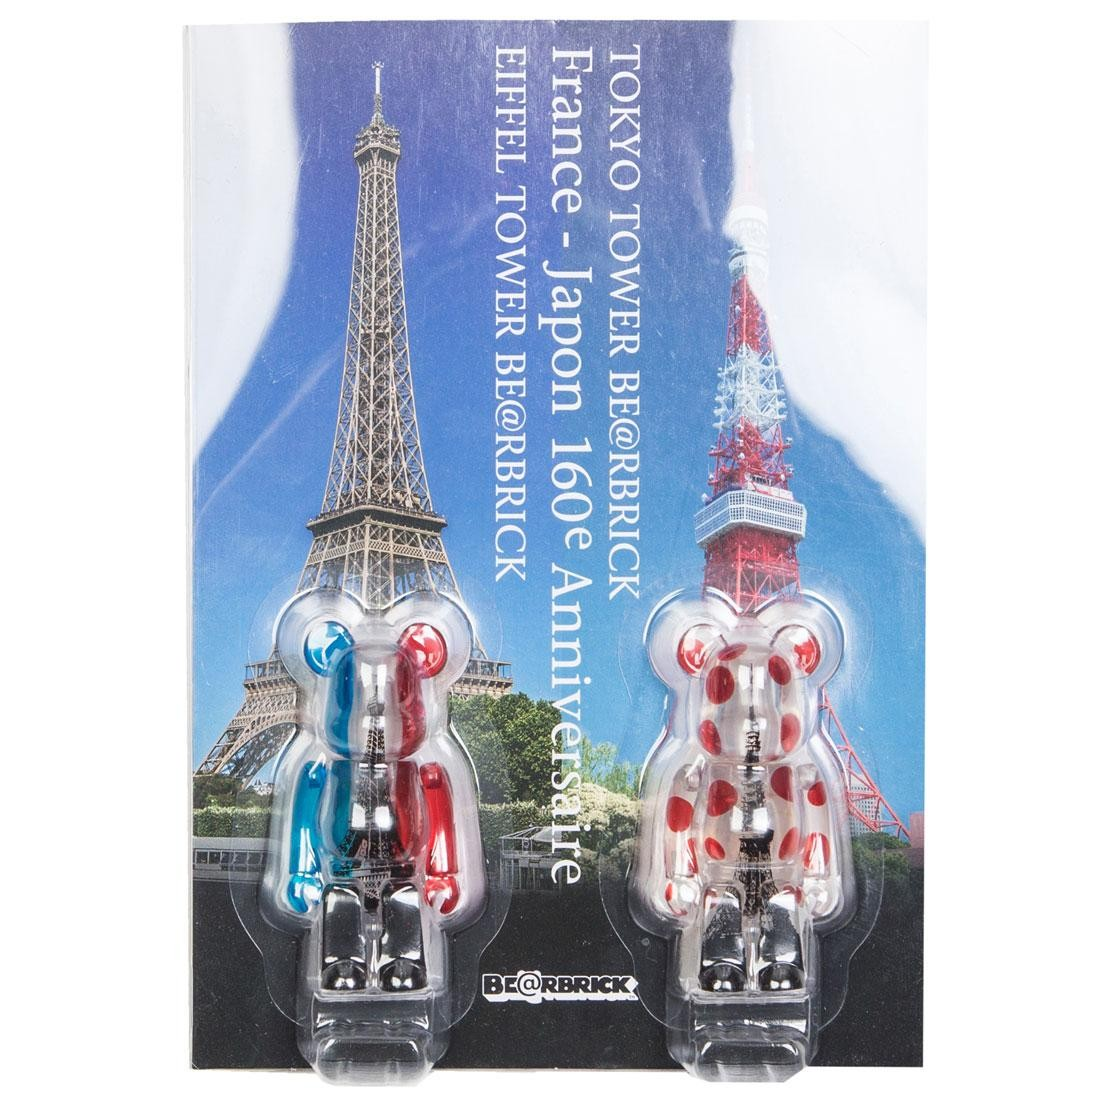 Medicom Tokyo Tower And Eiffel Tower 100% Bearbrick Twin Tower Pack Figures (white / red)